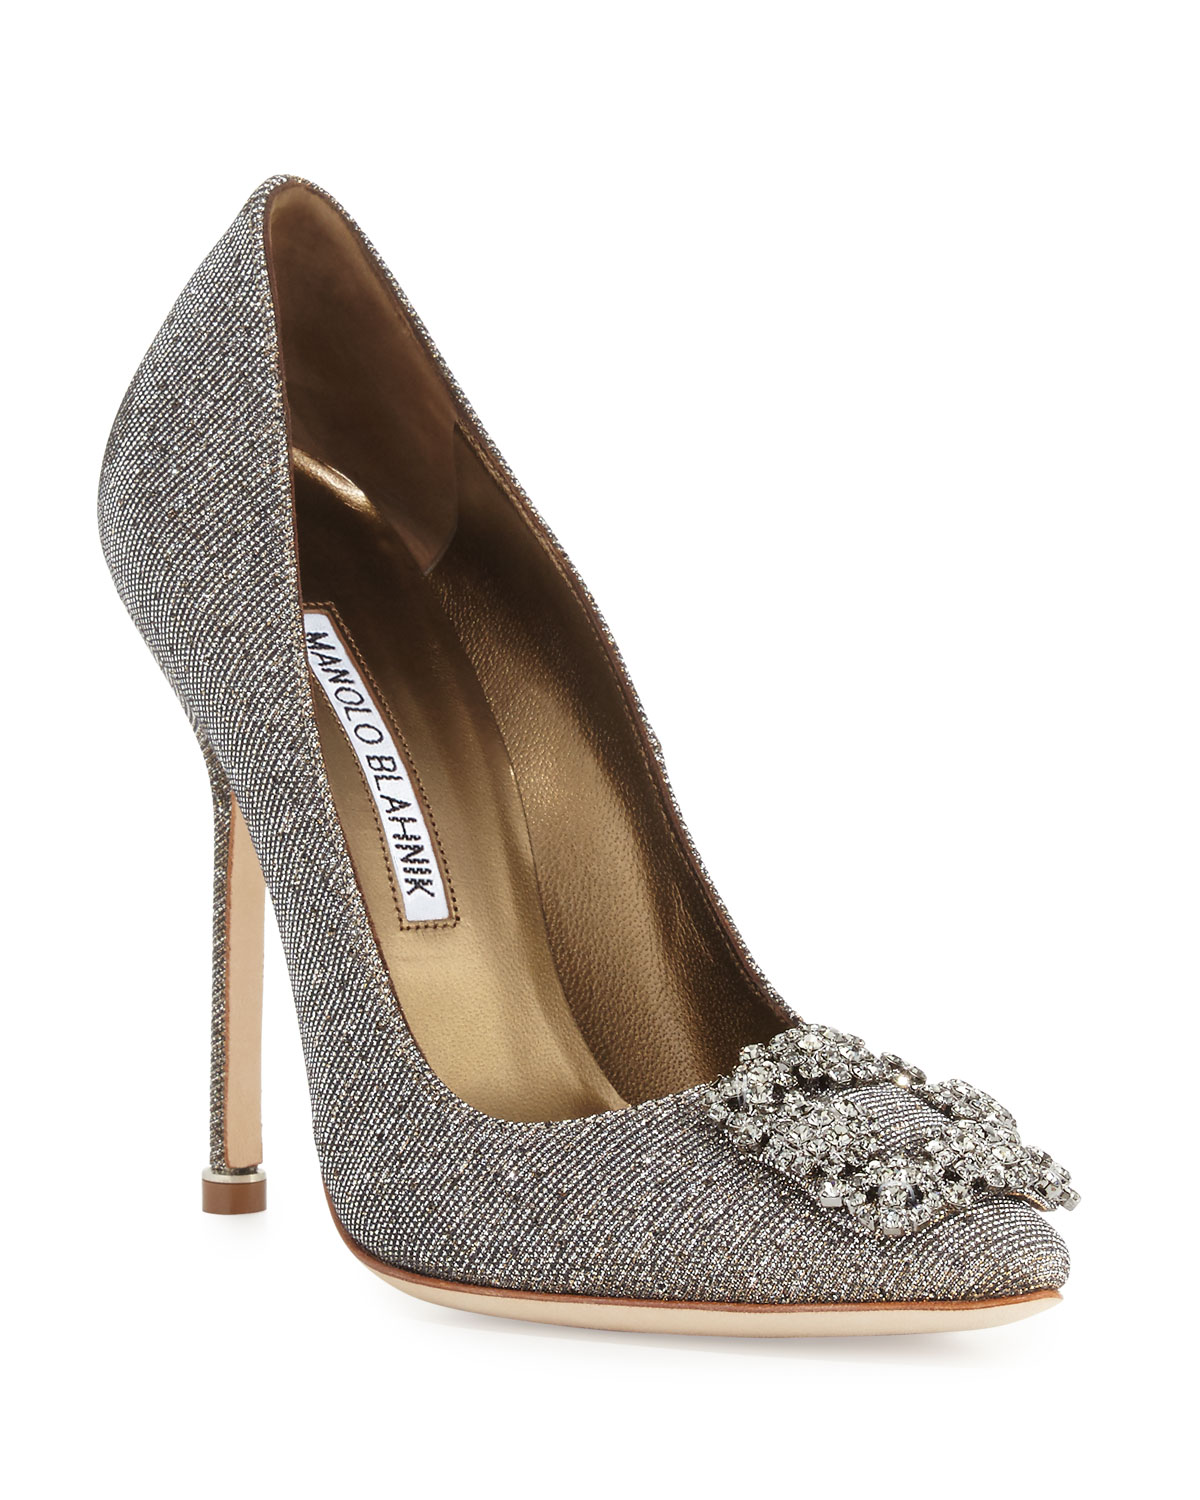 4b7b32cf8ac Manolo Blahnik Hangisi Crystal-Buckle Shimmery 115mm Pumps